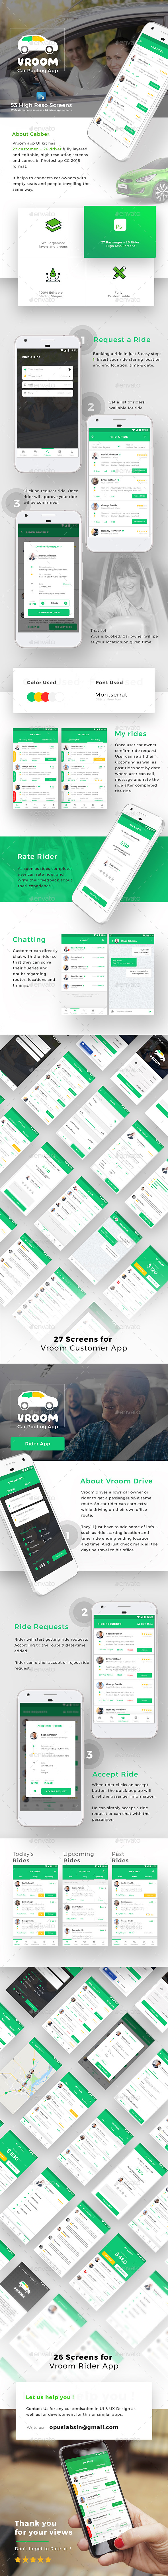 Car Pooling App UI Set | 53 High Reso Screens  | Vroom - User Interfaces Web Elements